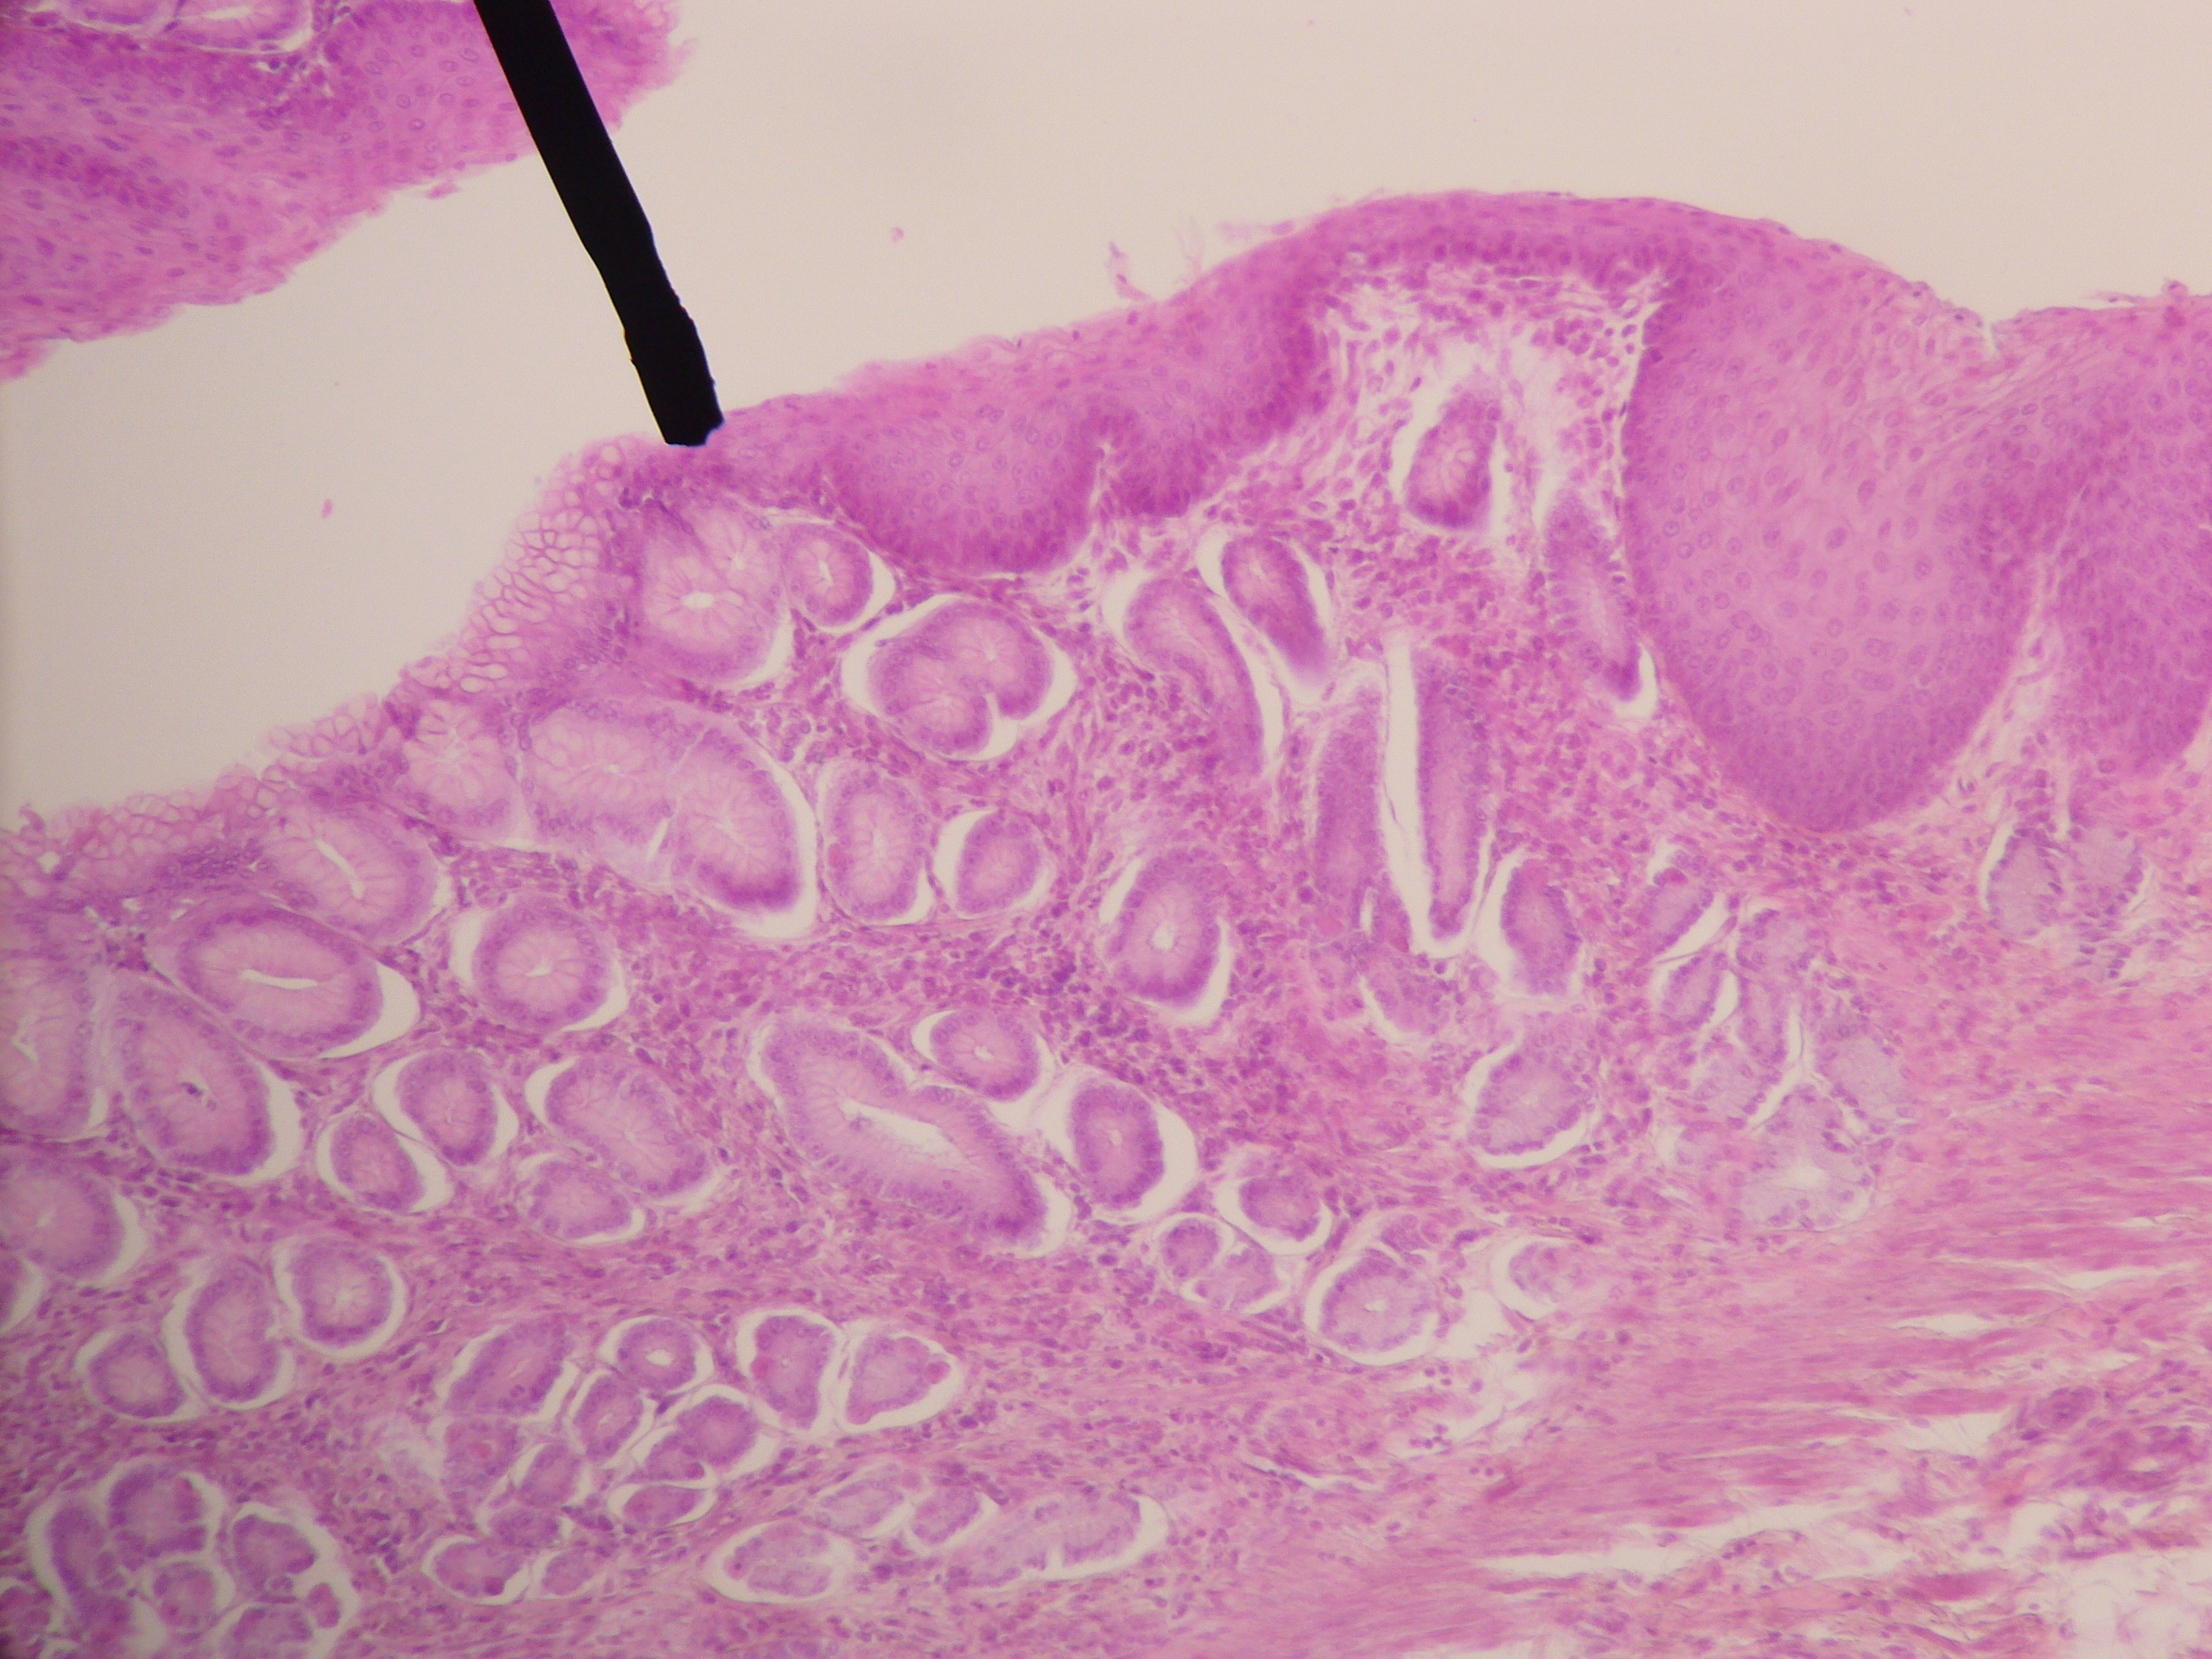 Histological section showing the gastroesophageal junction, with a black arrow pointing to the junction.